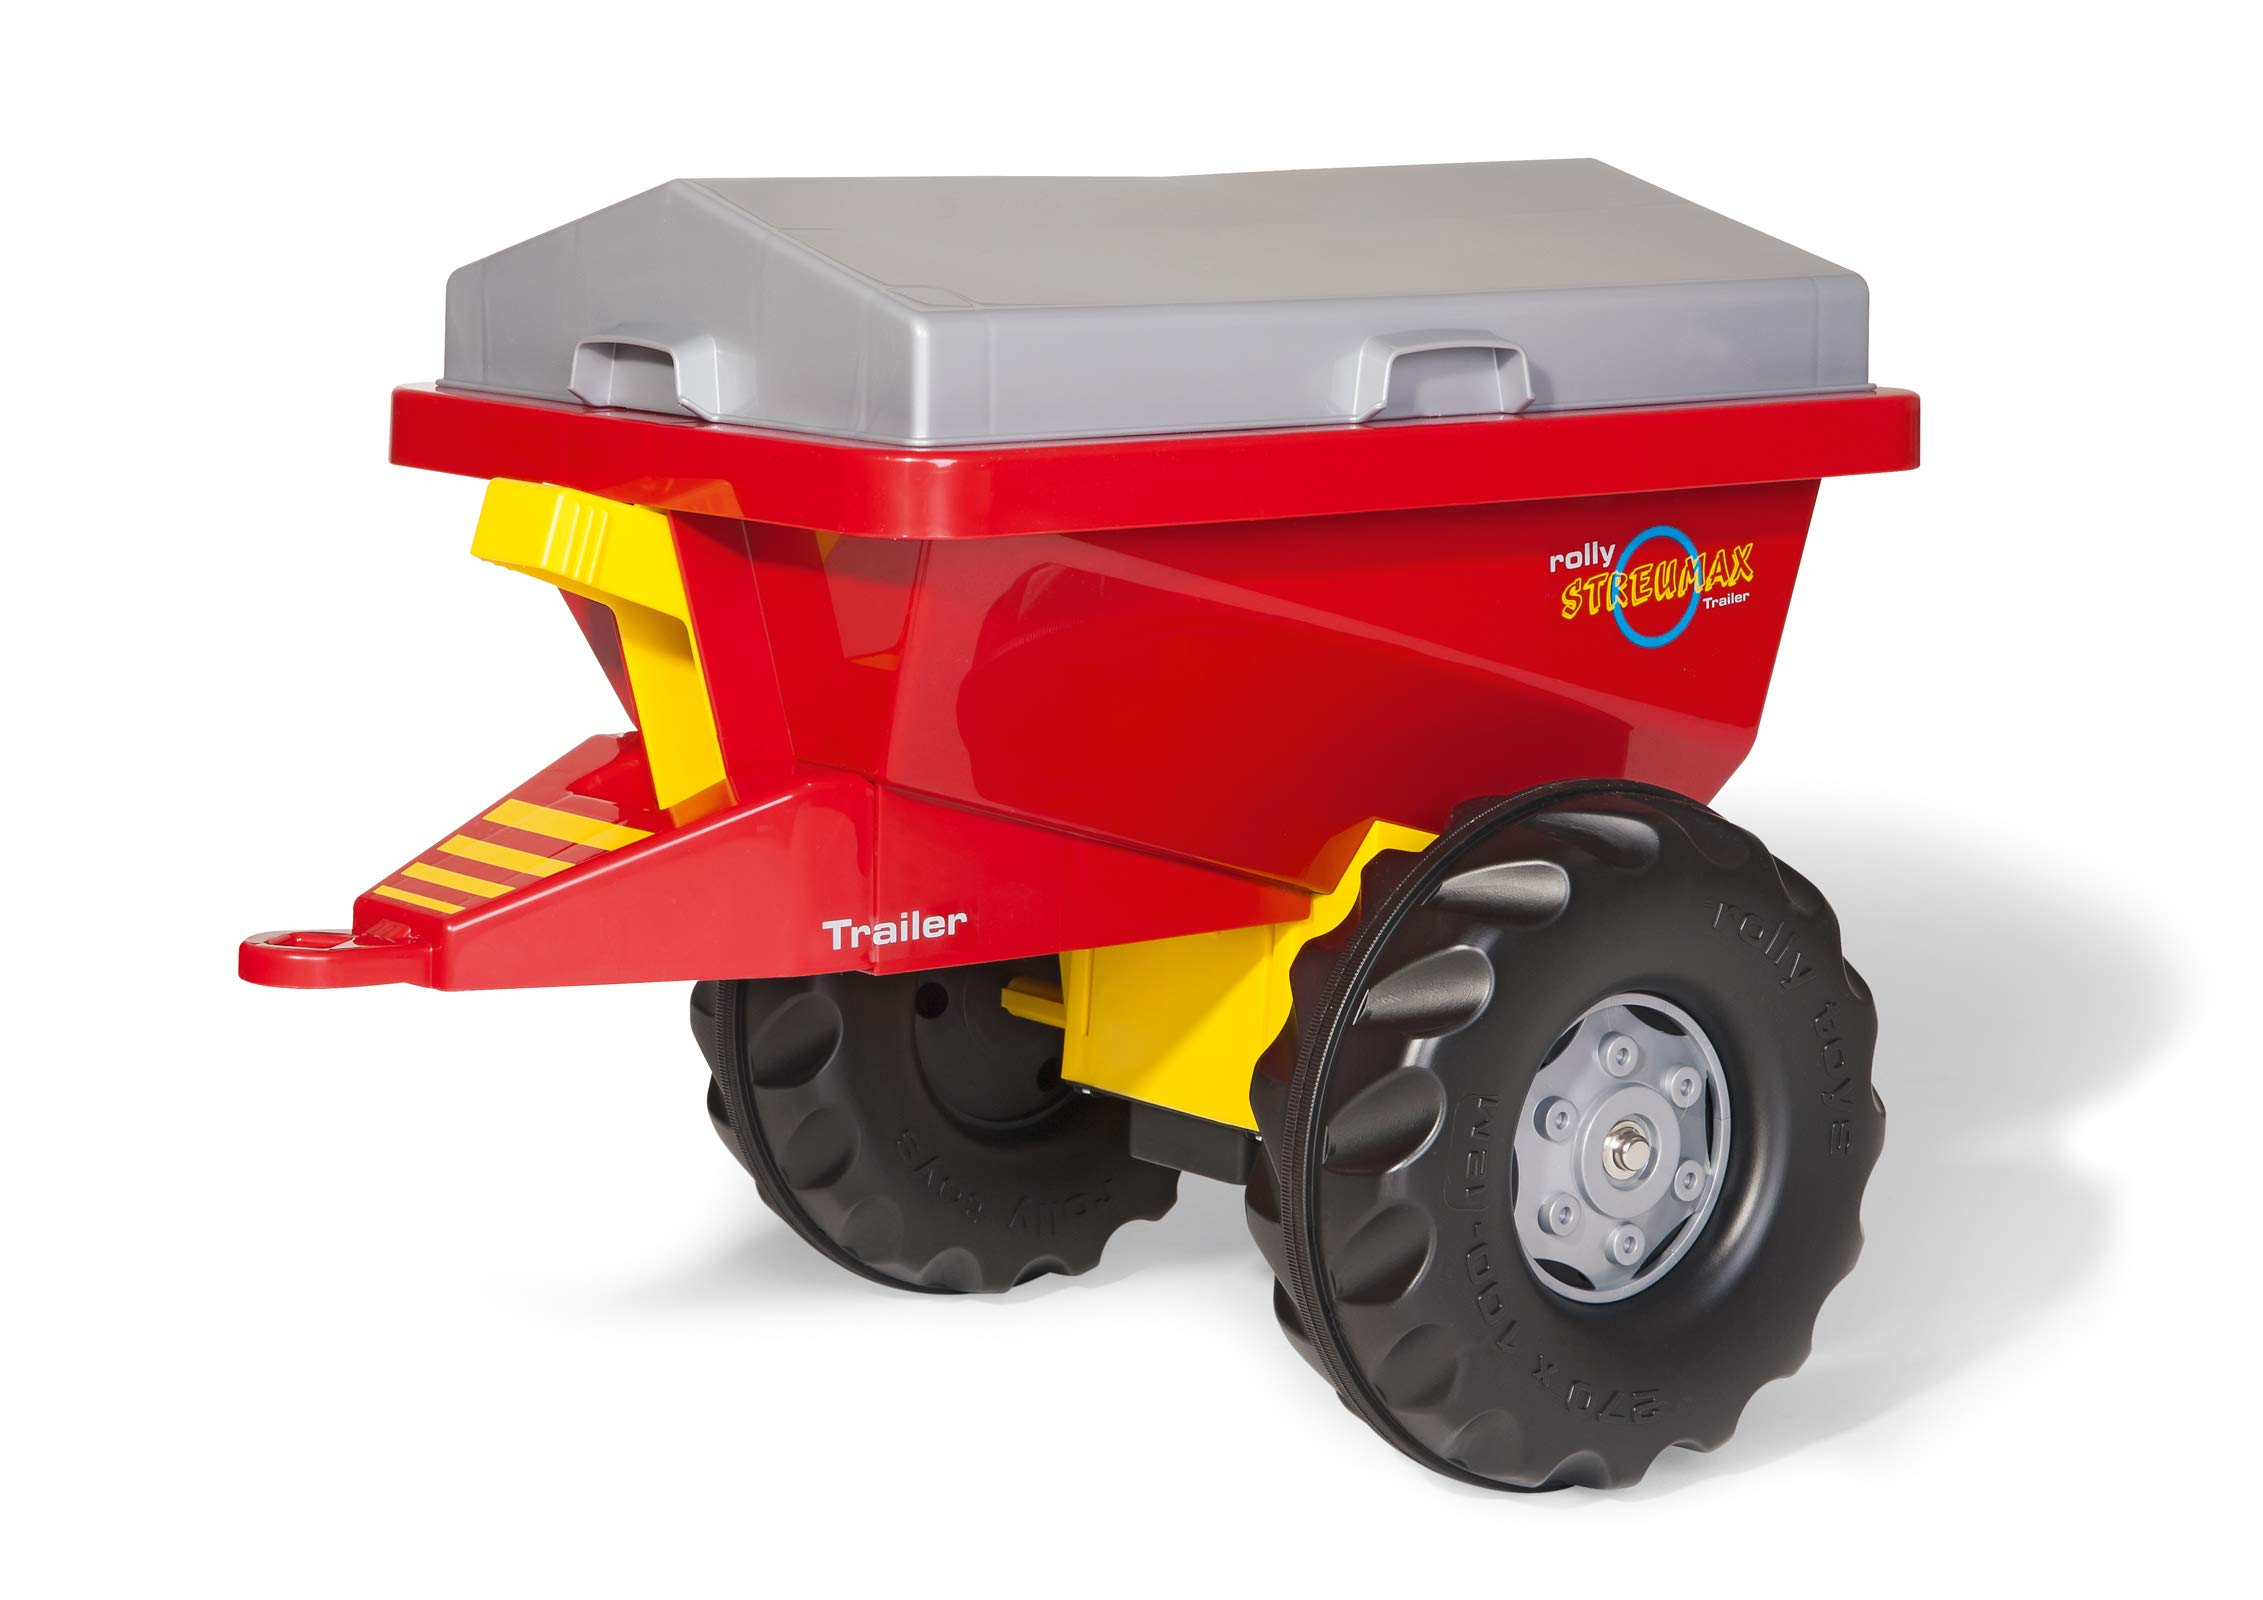 rolly toys Streumax Trailer, Red/Silver